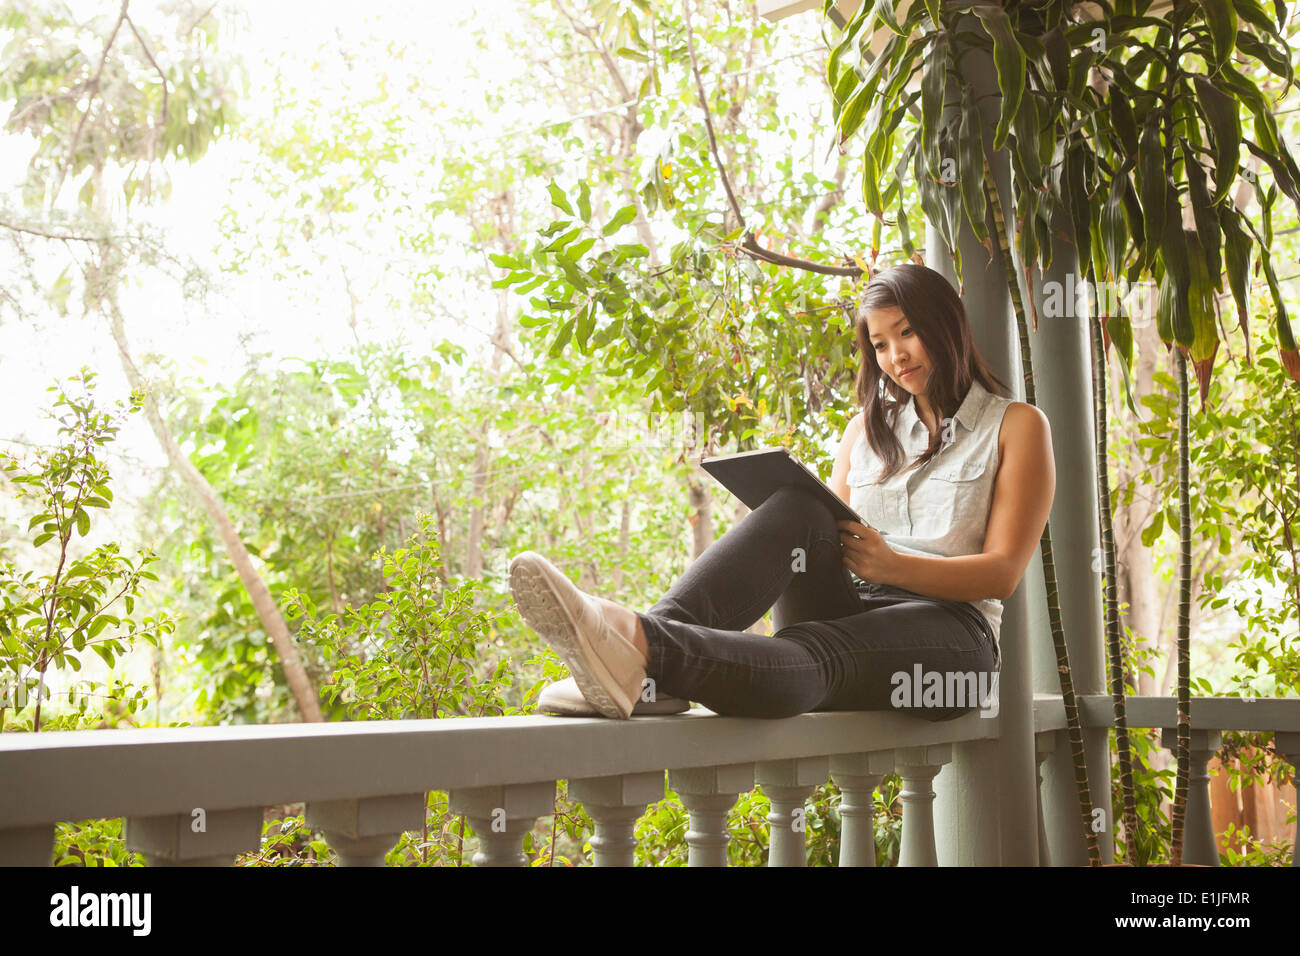 Young woman using digital tablet on porch - Stock Image